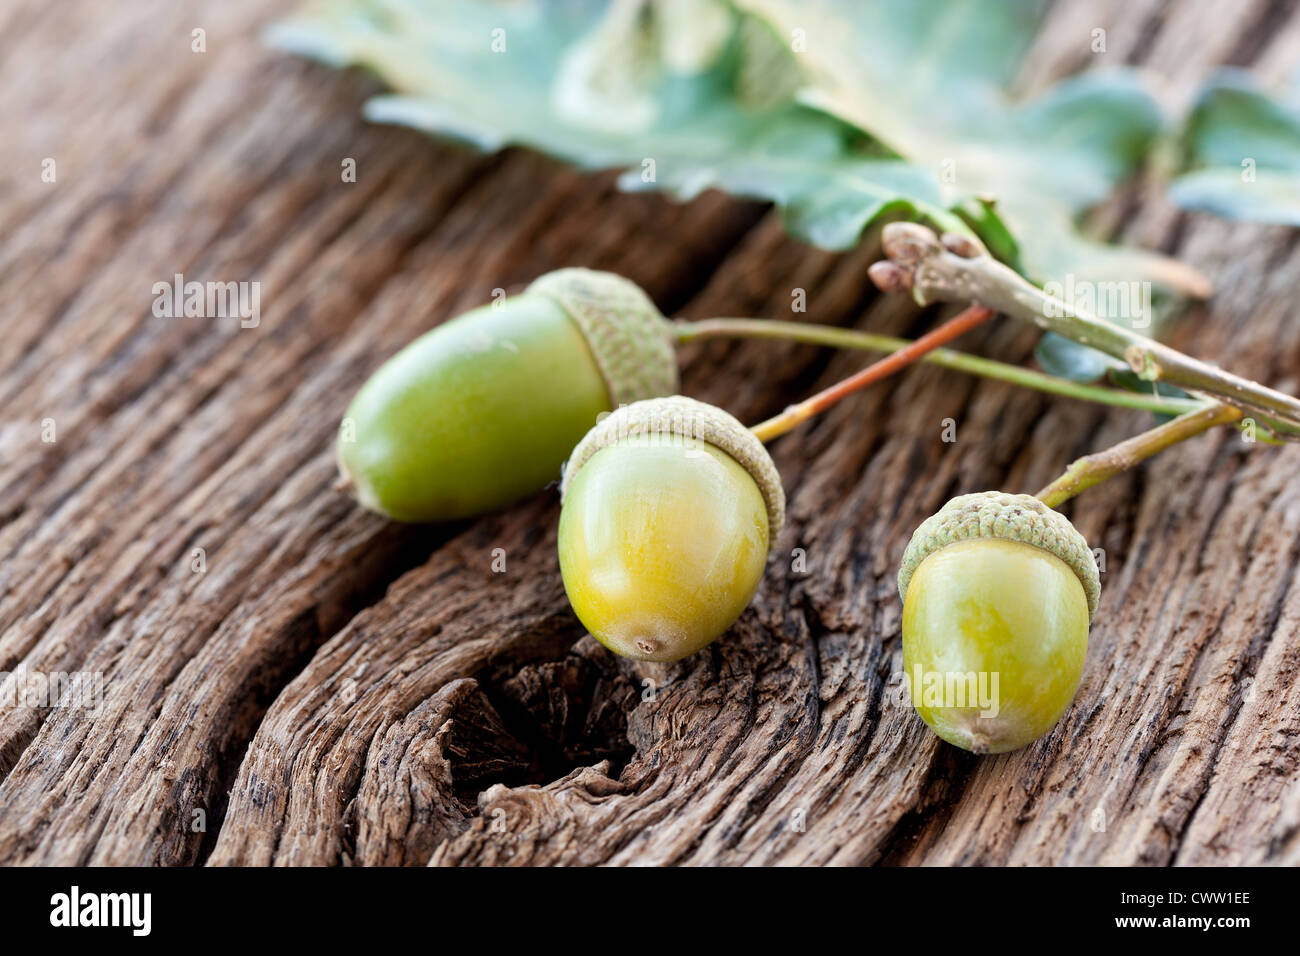 Acorn with leaves on a old wooden table - Stock Image